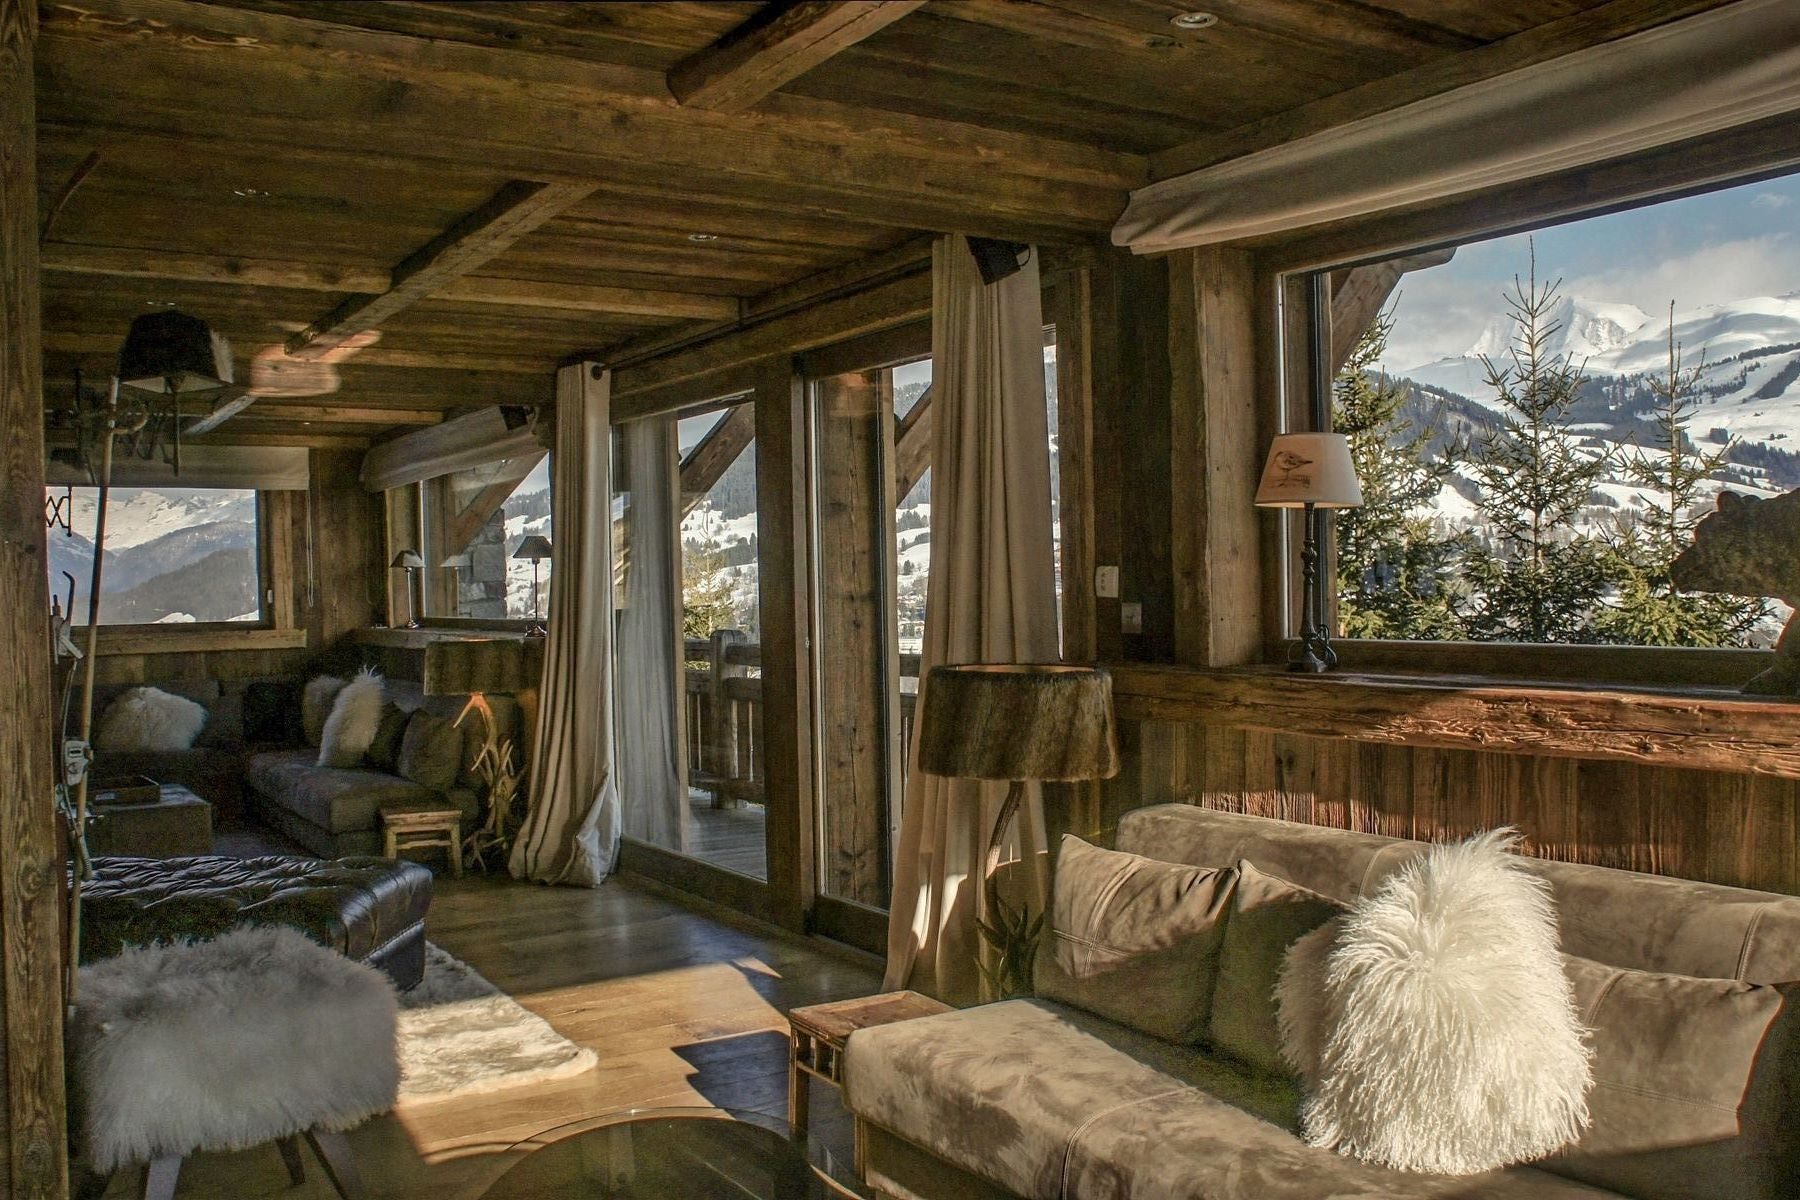 single family homes for Sale at Chalet Come : wonderful chalet with panoramic view in Mont blanc - Alpine Megeve, Rhone-Alpes 74120 France